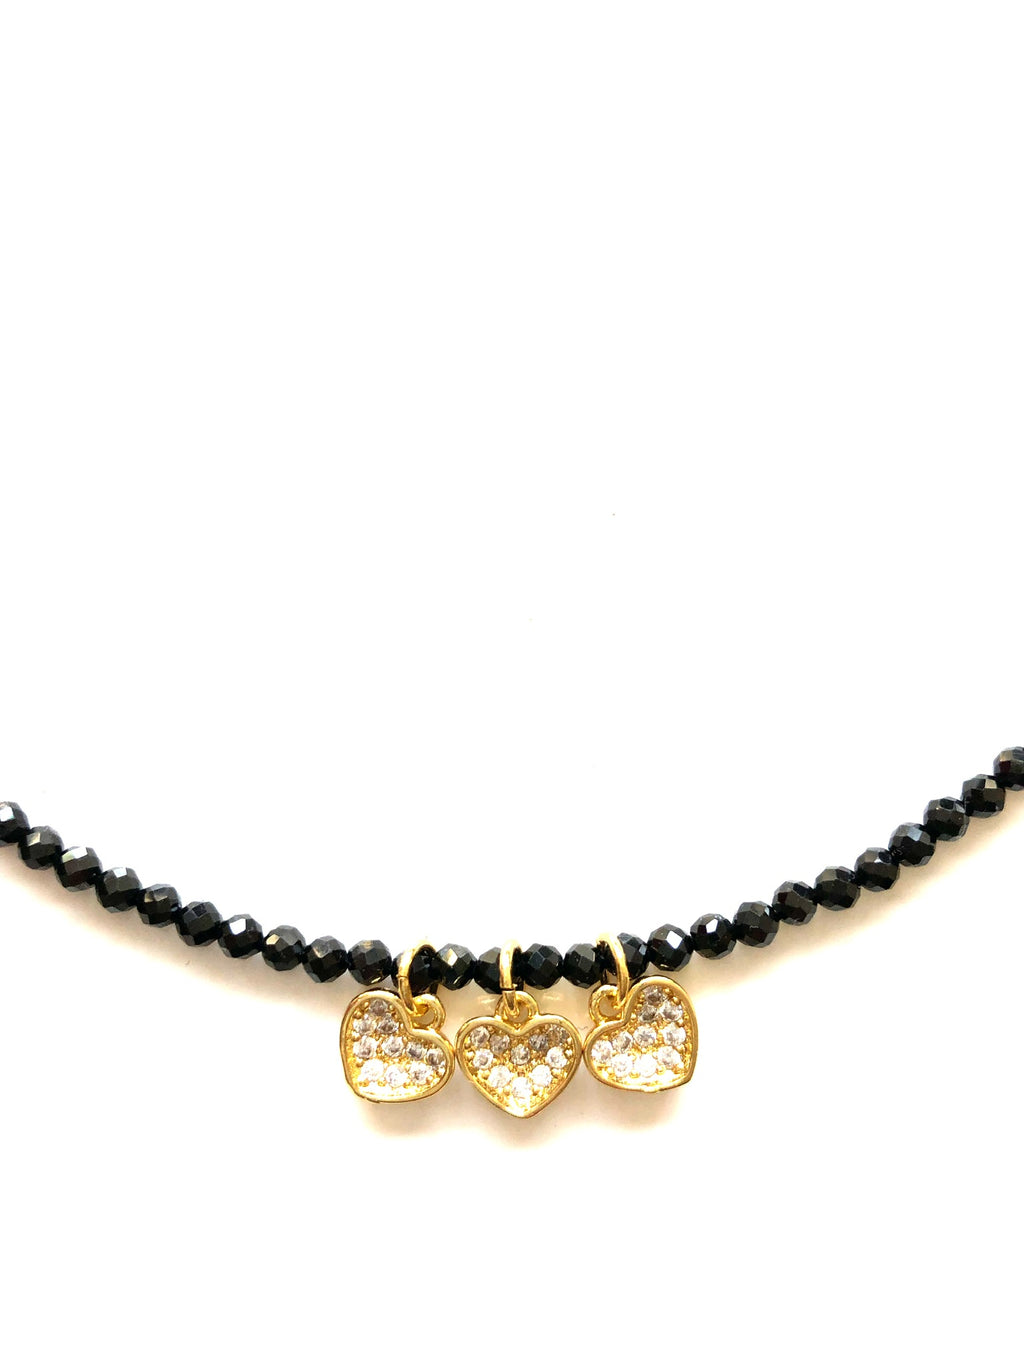 Black Onxy and Gold Heart Charm Necklace